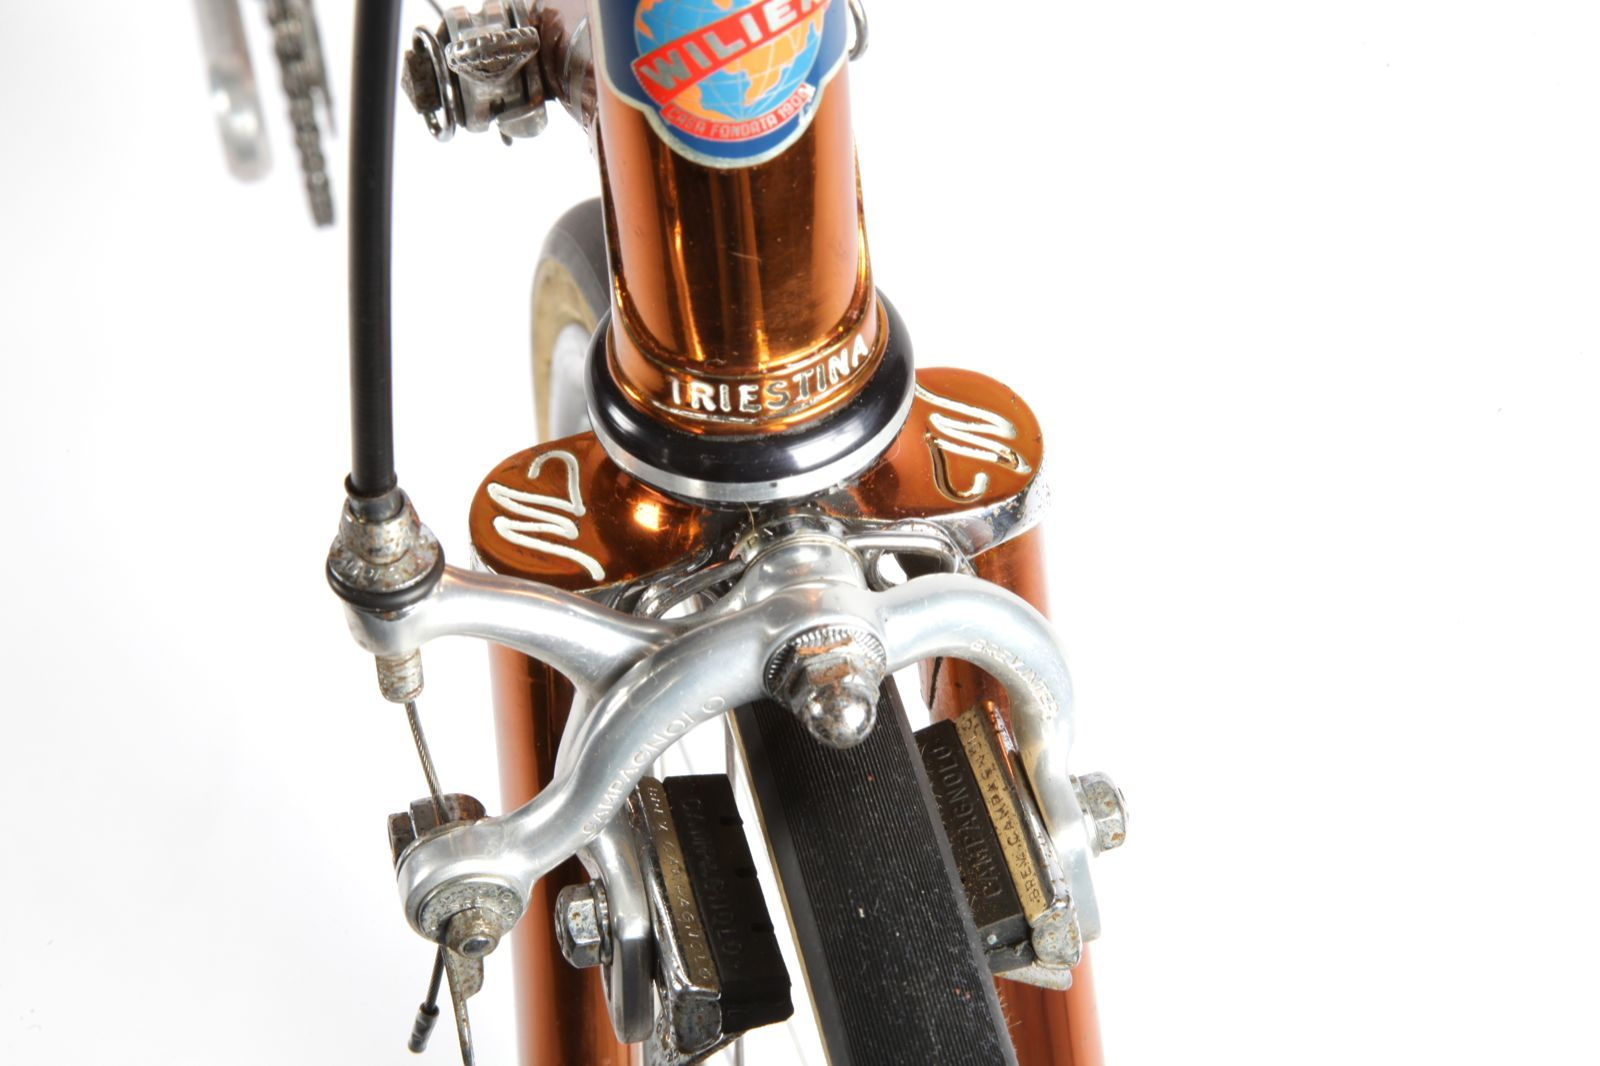 Wilier Triestina 1976 Detail | Eroica Cicli